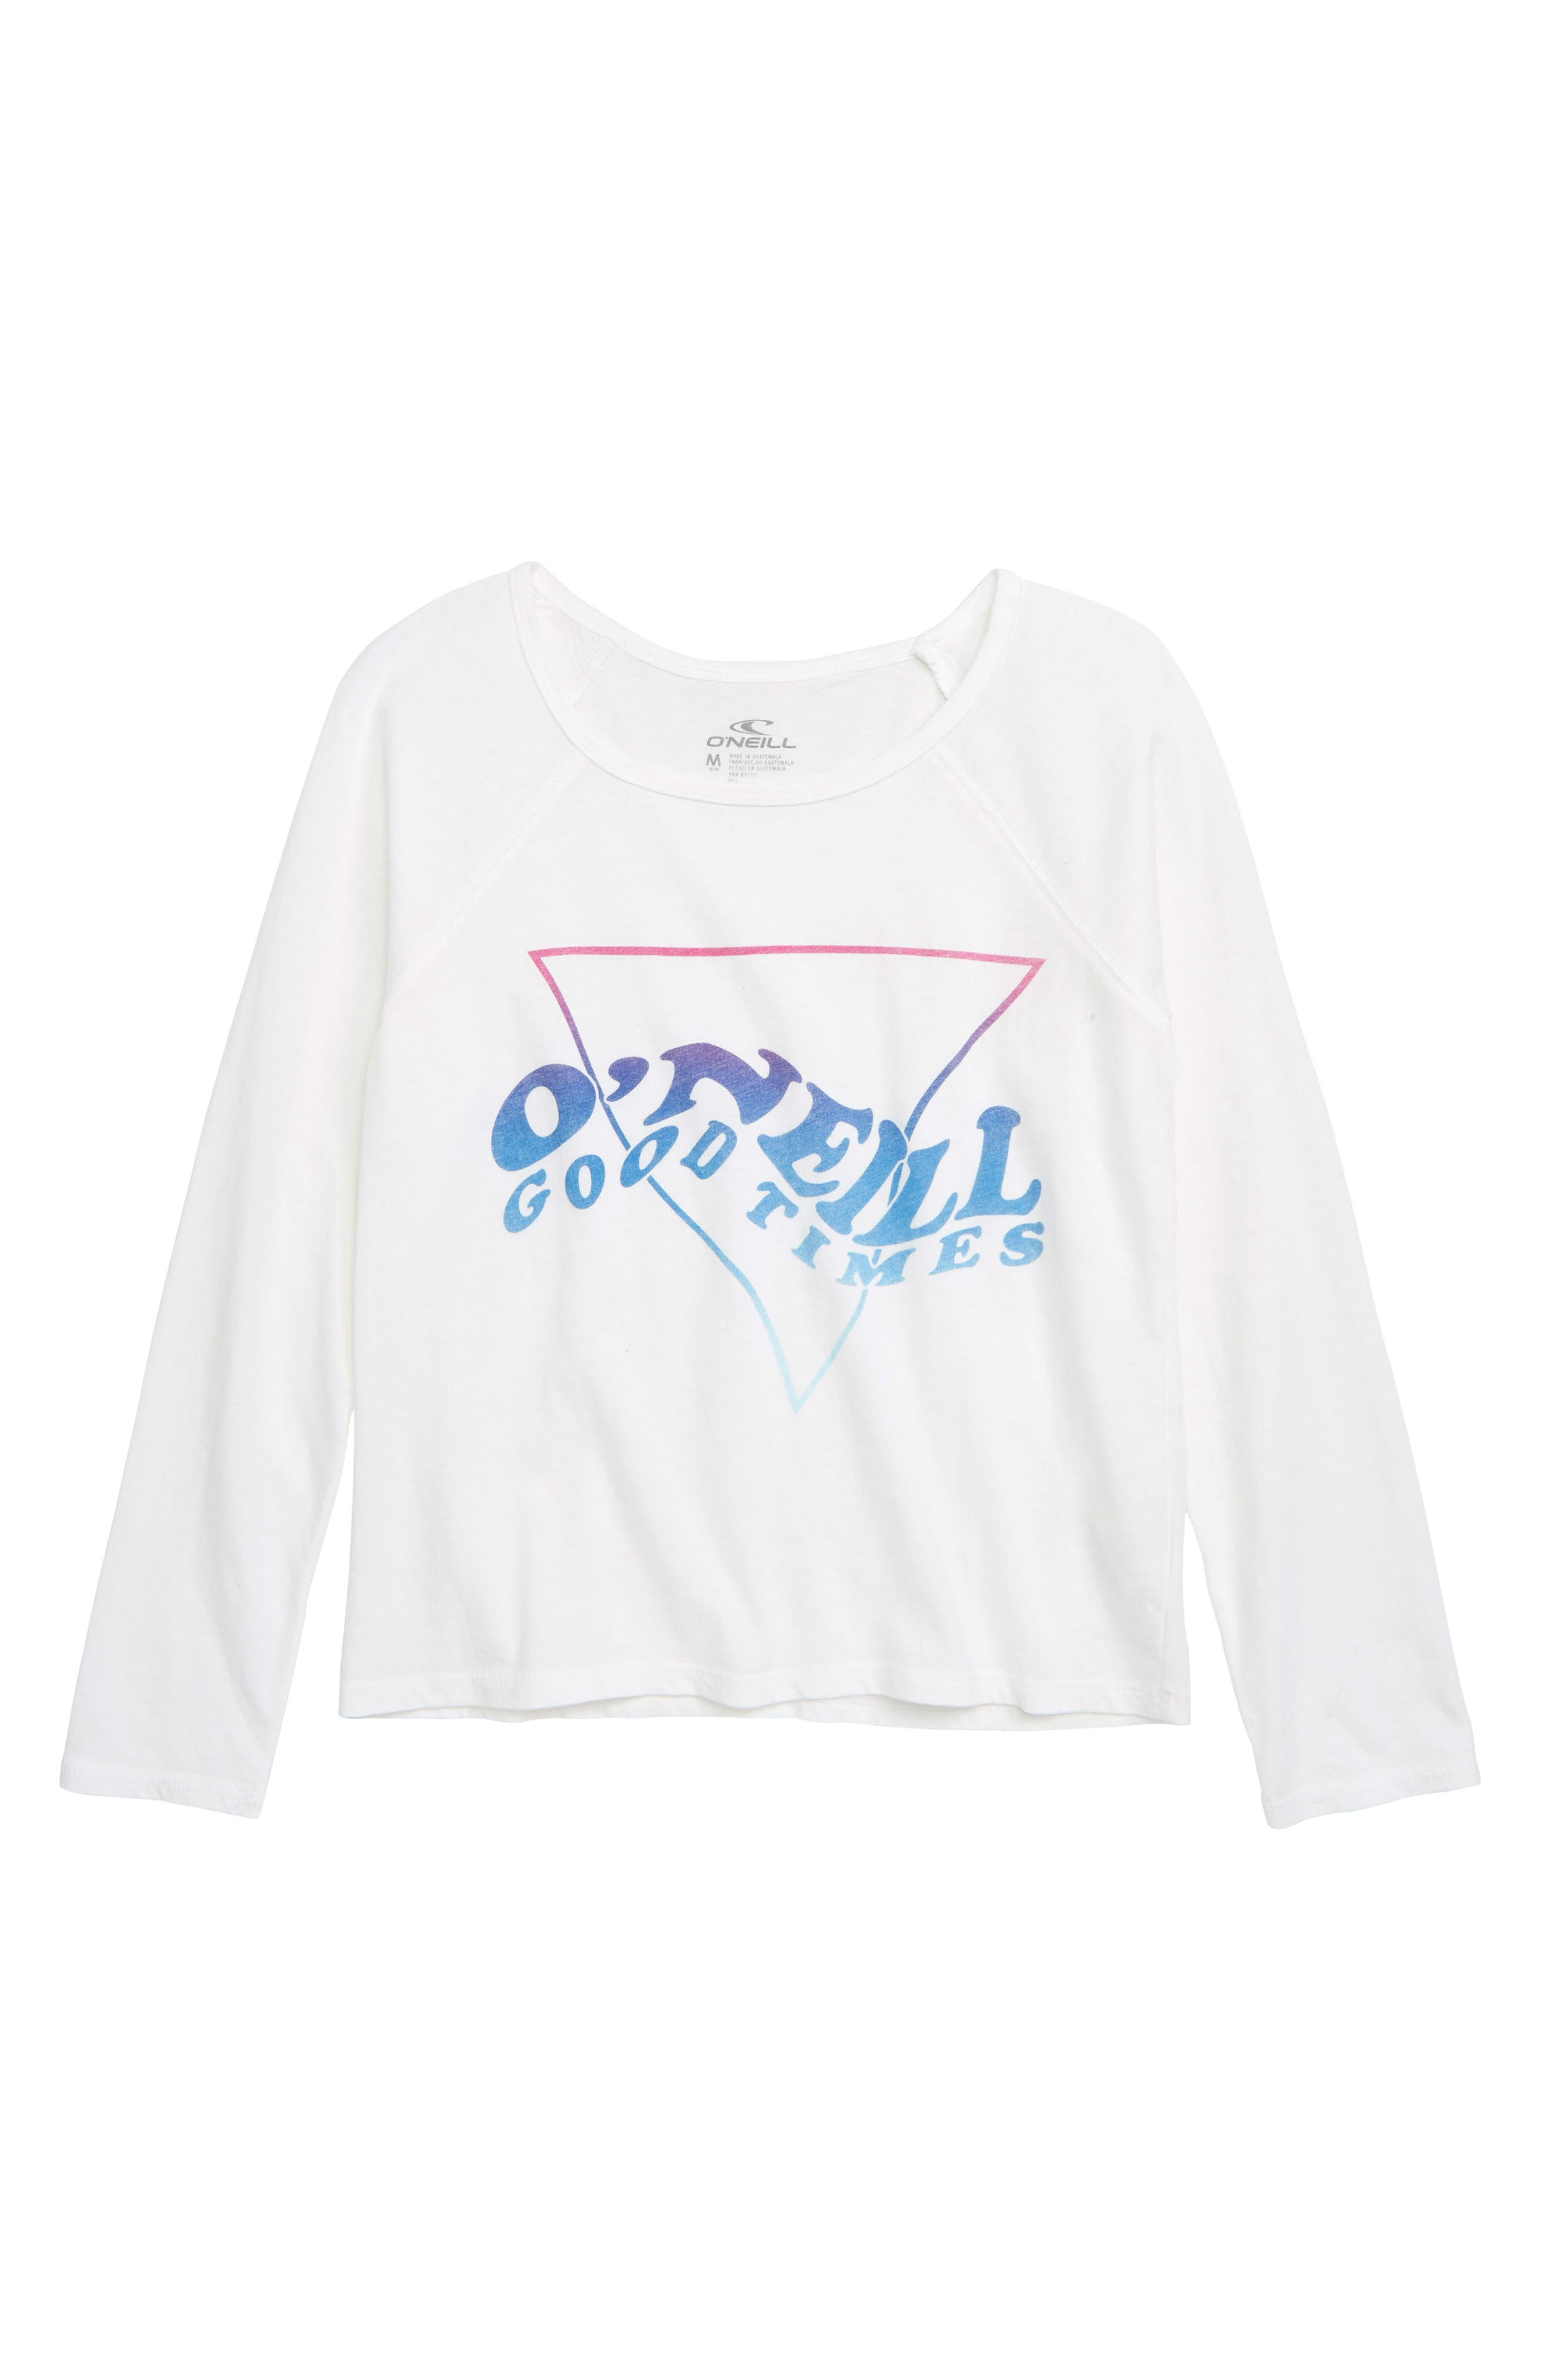 O'NEILL Like Minded Screen Print Tee, Main, color, WHITE